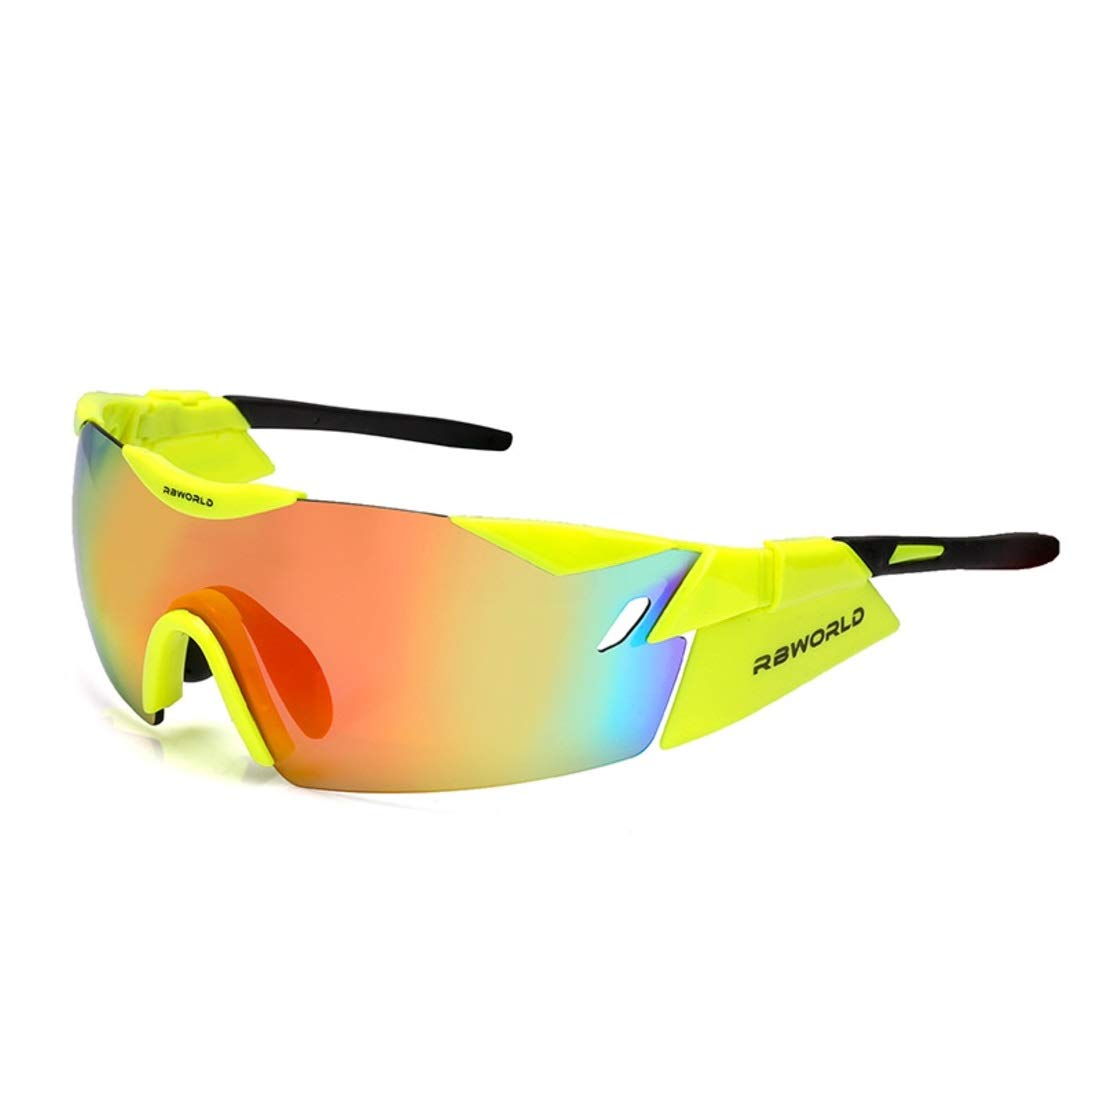 BAOYIT Riding Glasses Windproof Ultra Light Sports Sunglasses Cycling Glasses Outdoor Sports UV Protection Bike Windproof Sand (Color : D) by BAOYIT